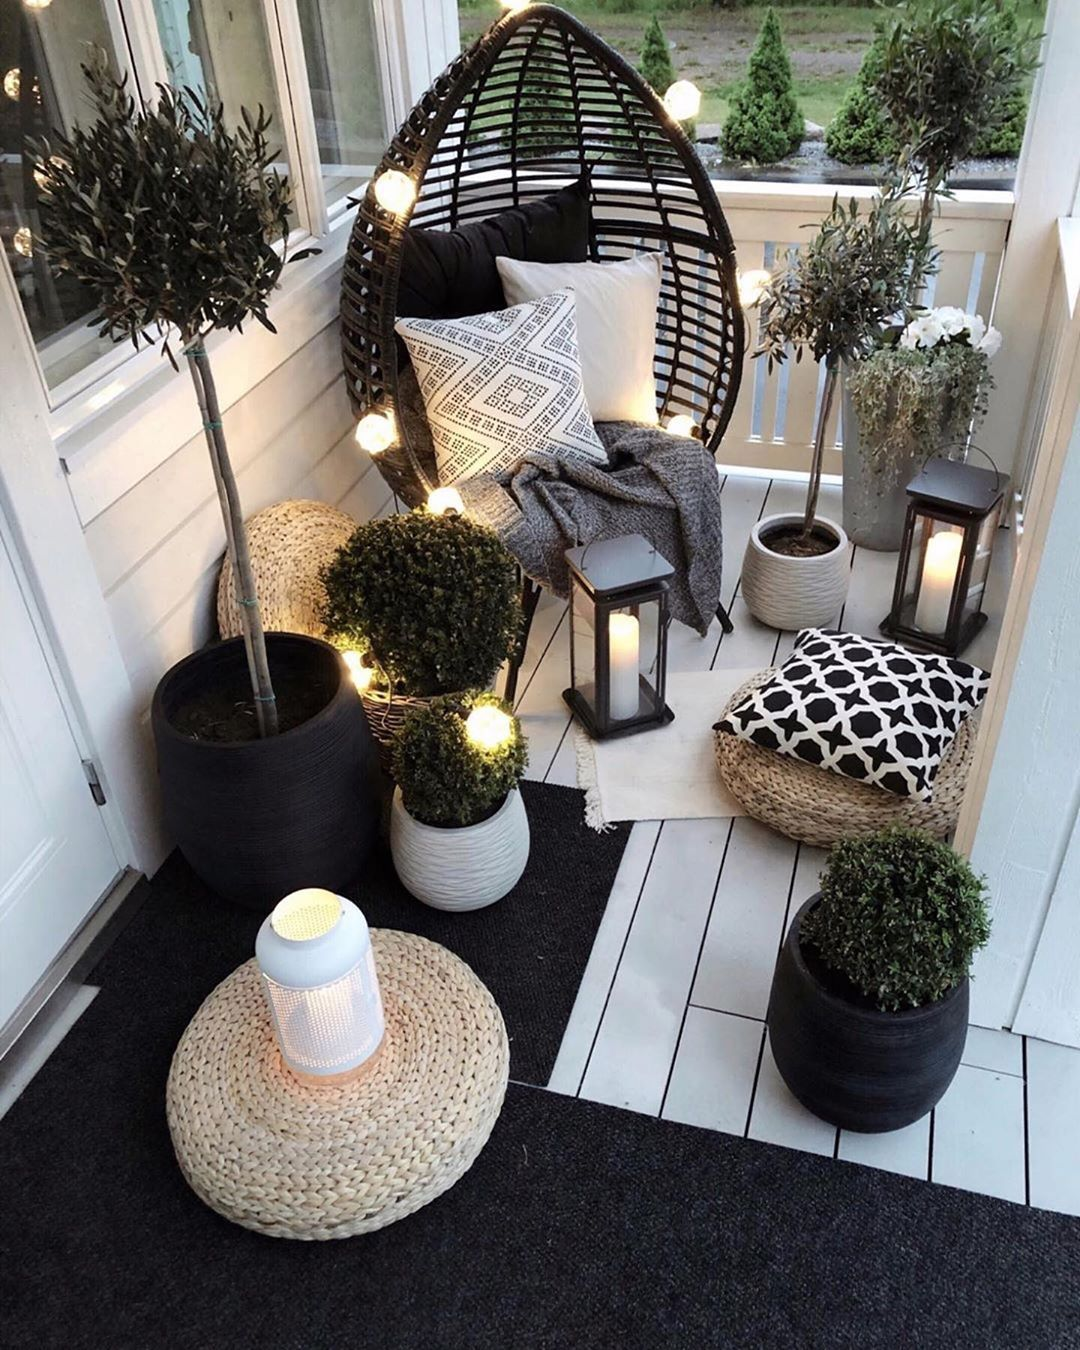 Photo of 15 Ways to Make Your Small Balcony Space Feel Like A Backyard Oasis